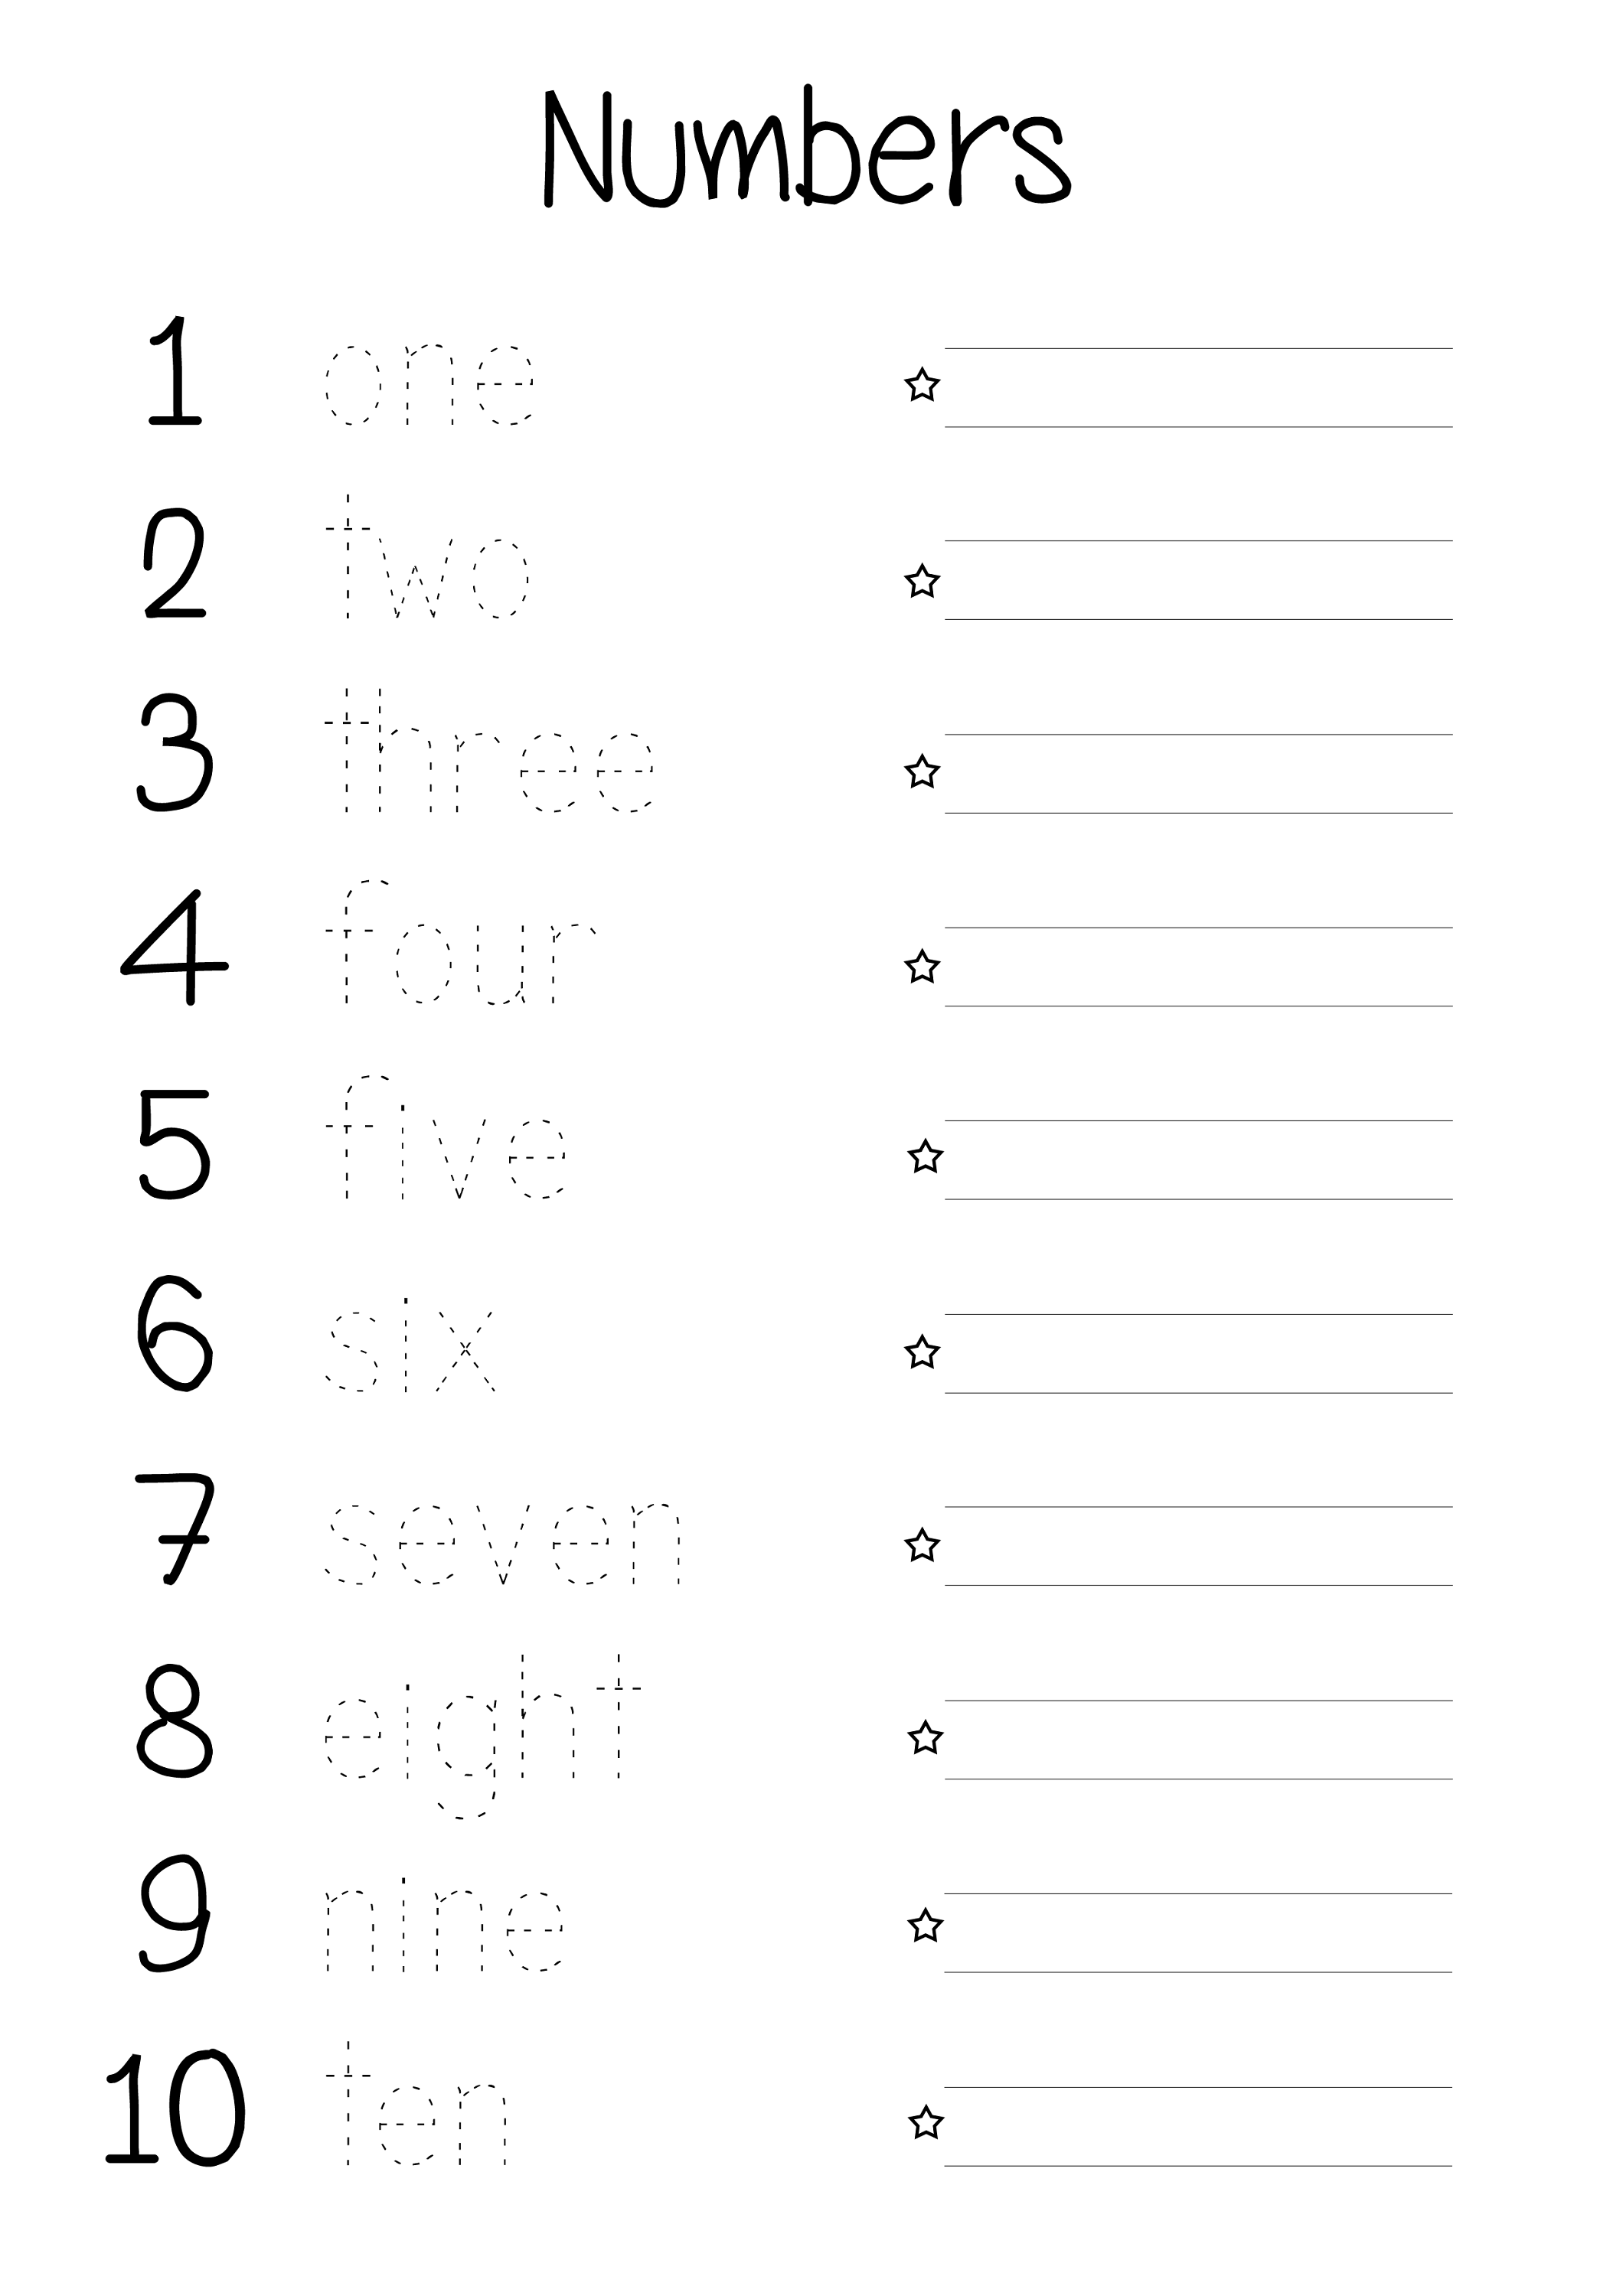 number-word-worksheets-2016